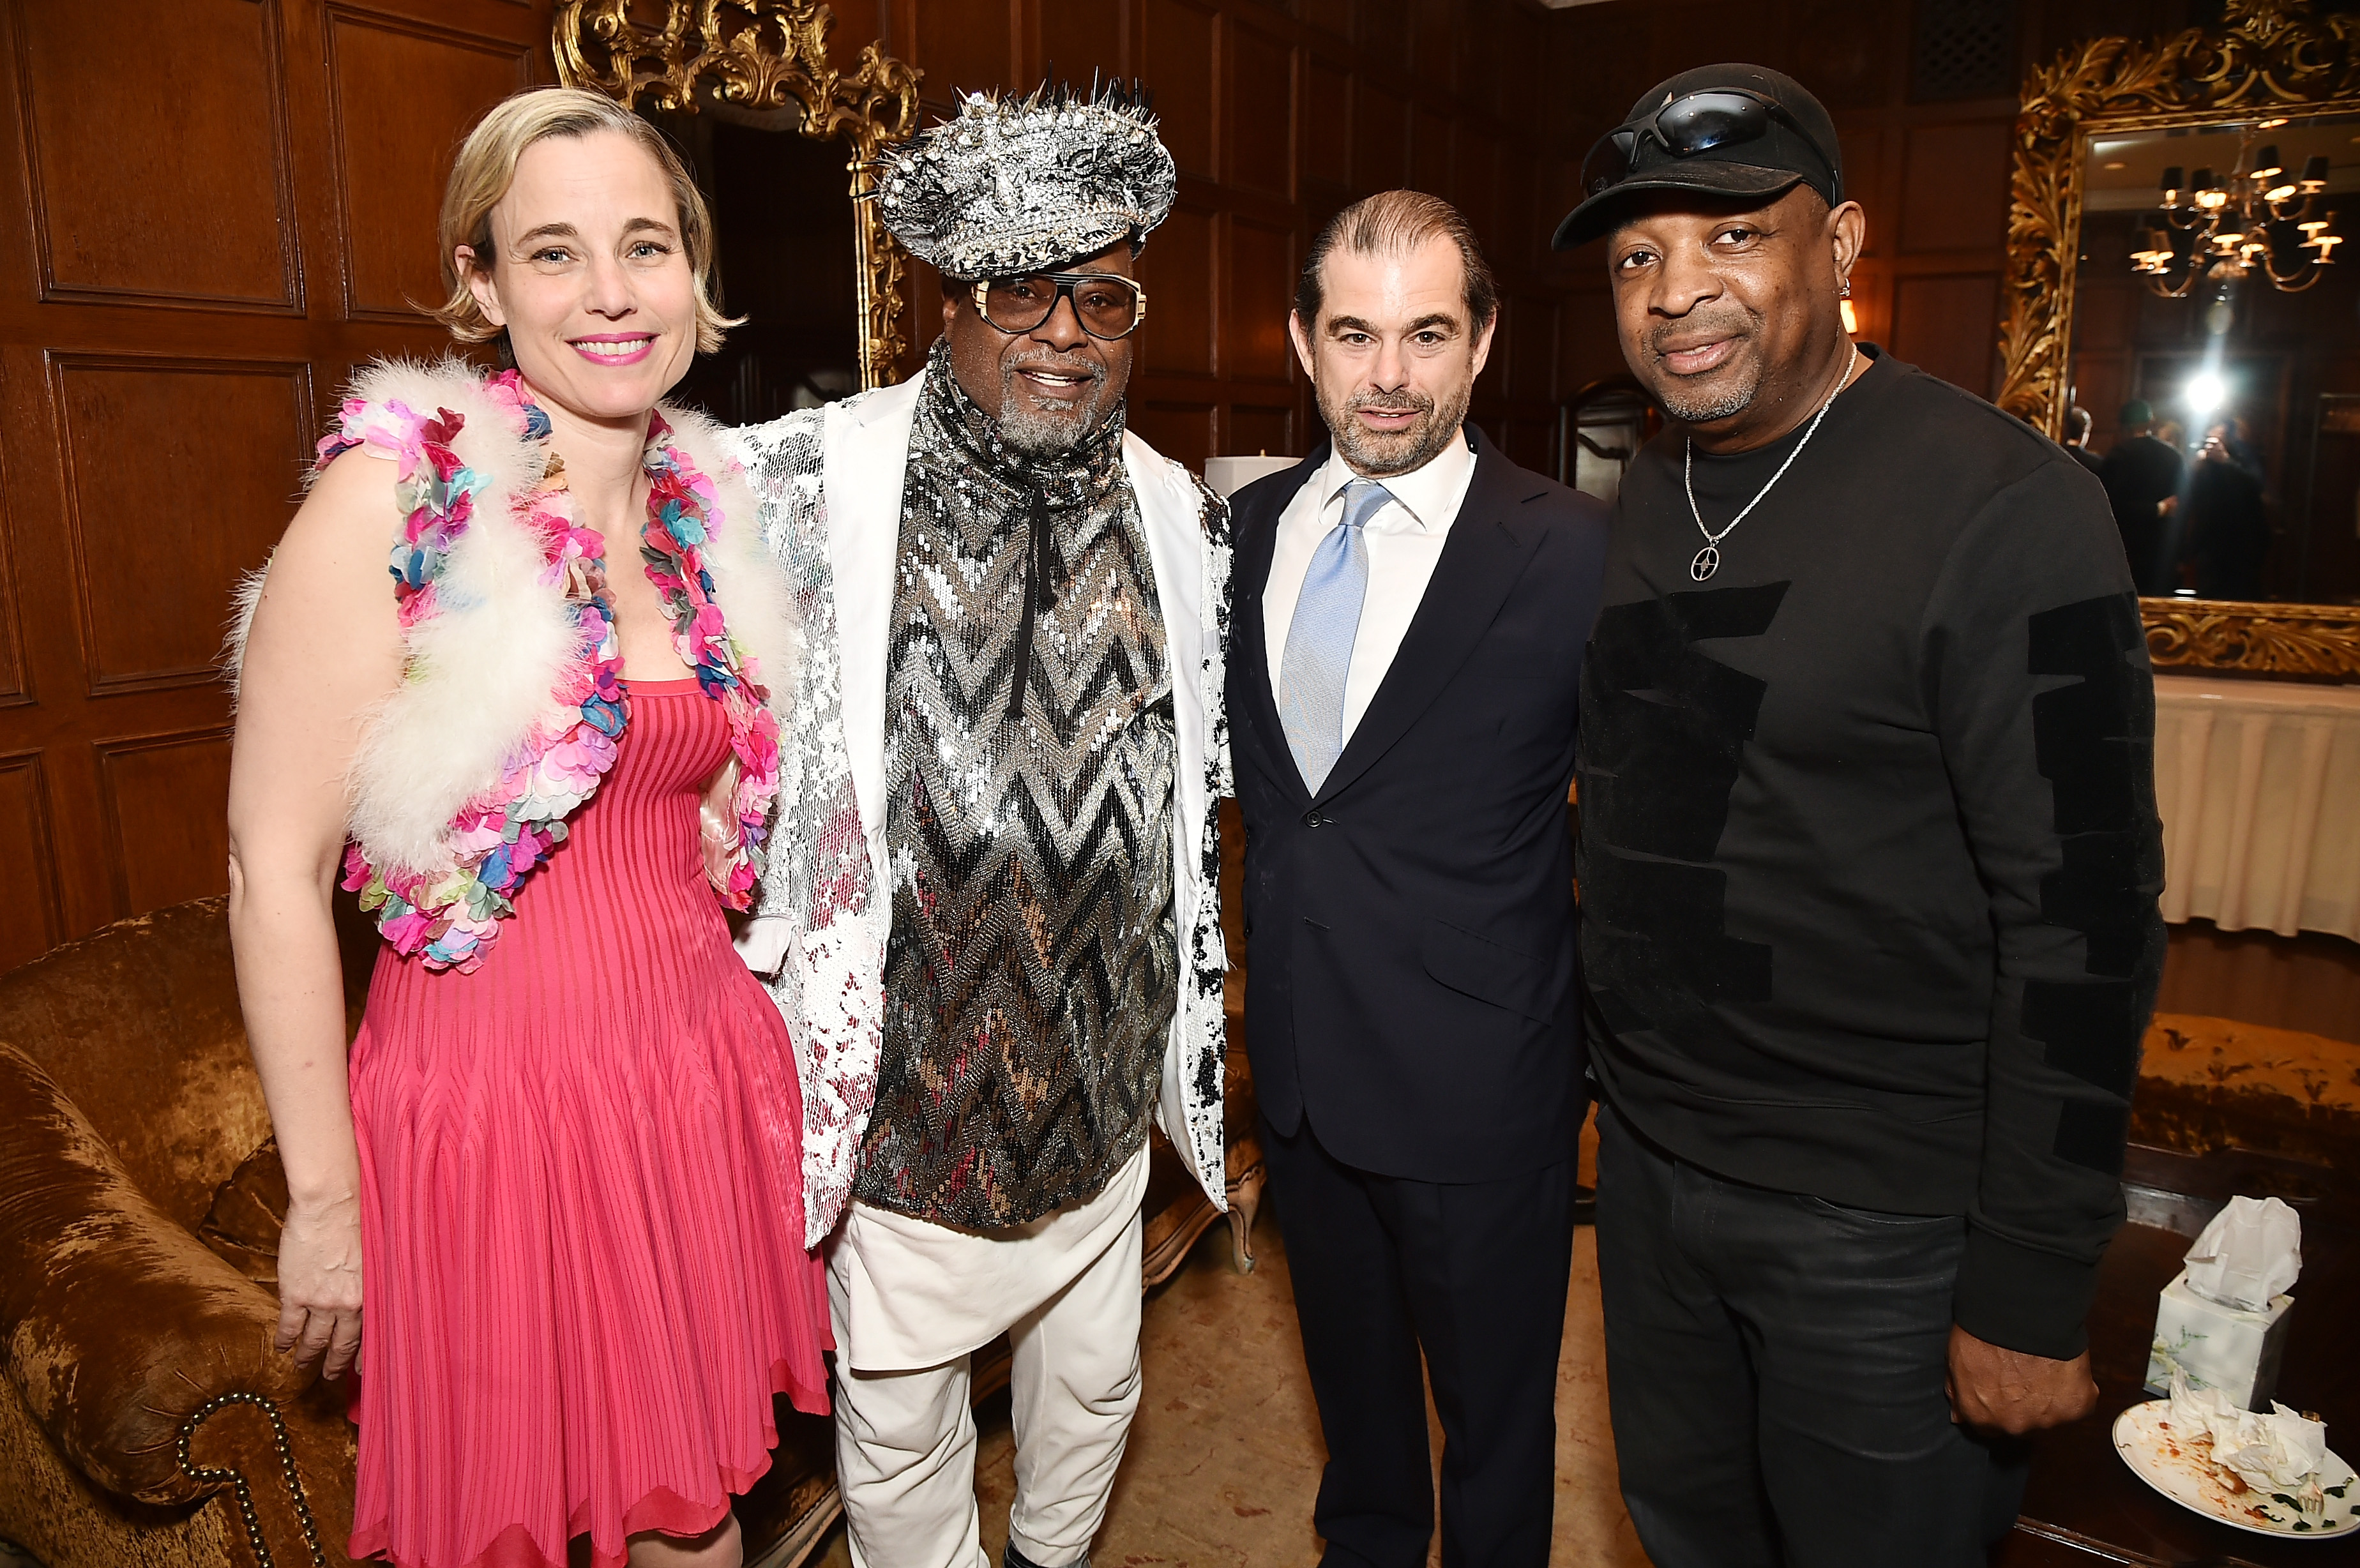 NEW YORK, NY - APRIL 13: (L-R) Carolina Zapf, Singer/Songwriter George Clinton, Chairmain and CEO of SESAC John Josephson and Rapper Chuck D attend the 2017 SESAC Pop Awards on April 13, 2017 in New York City. (Photo by Theo Wargo/Getty Images for SESAC)